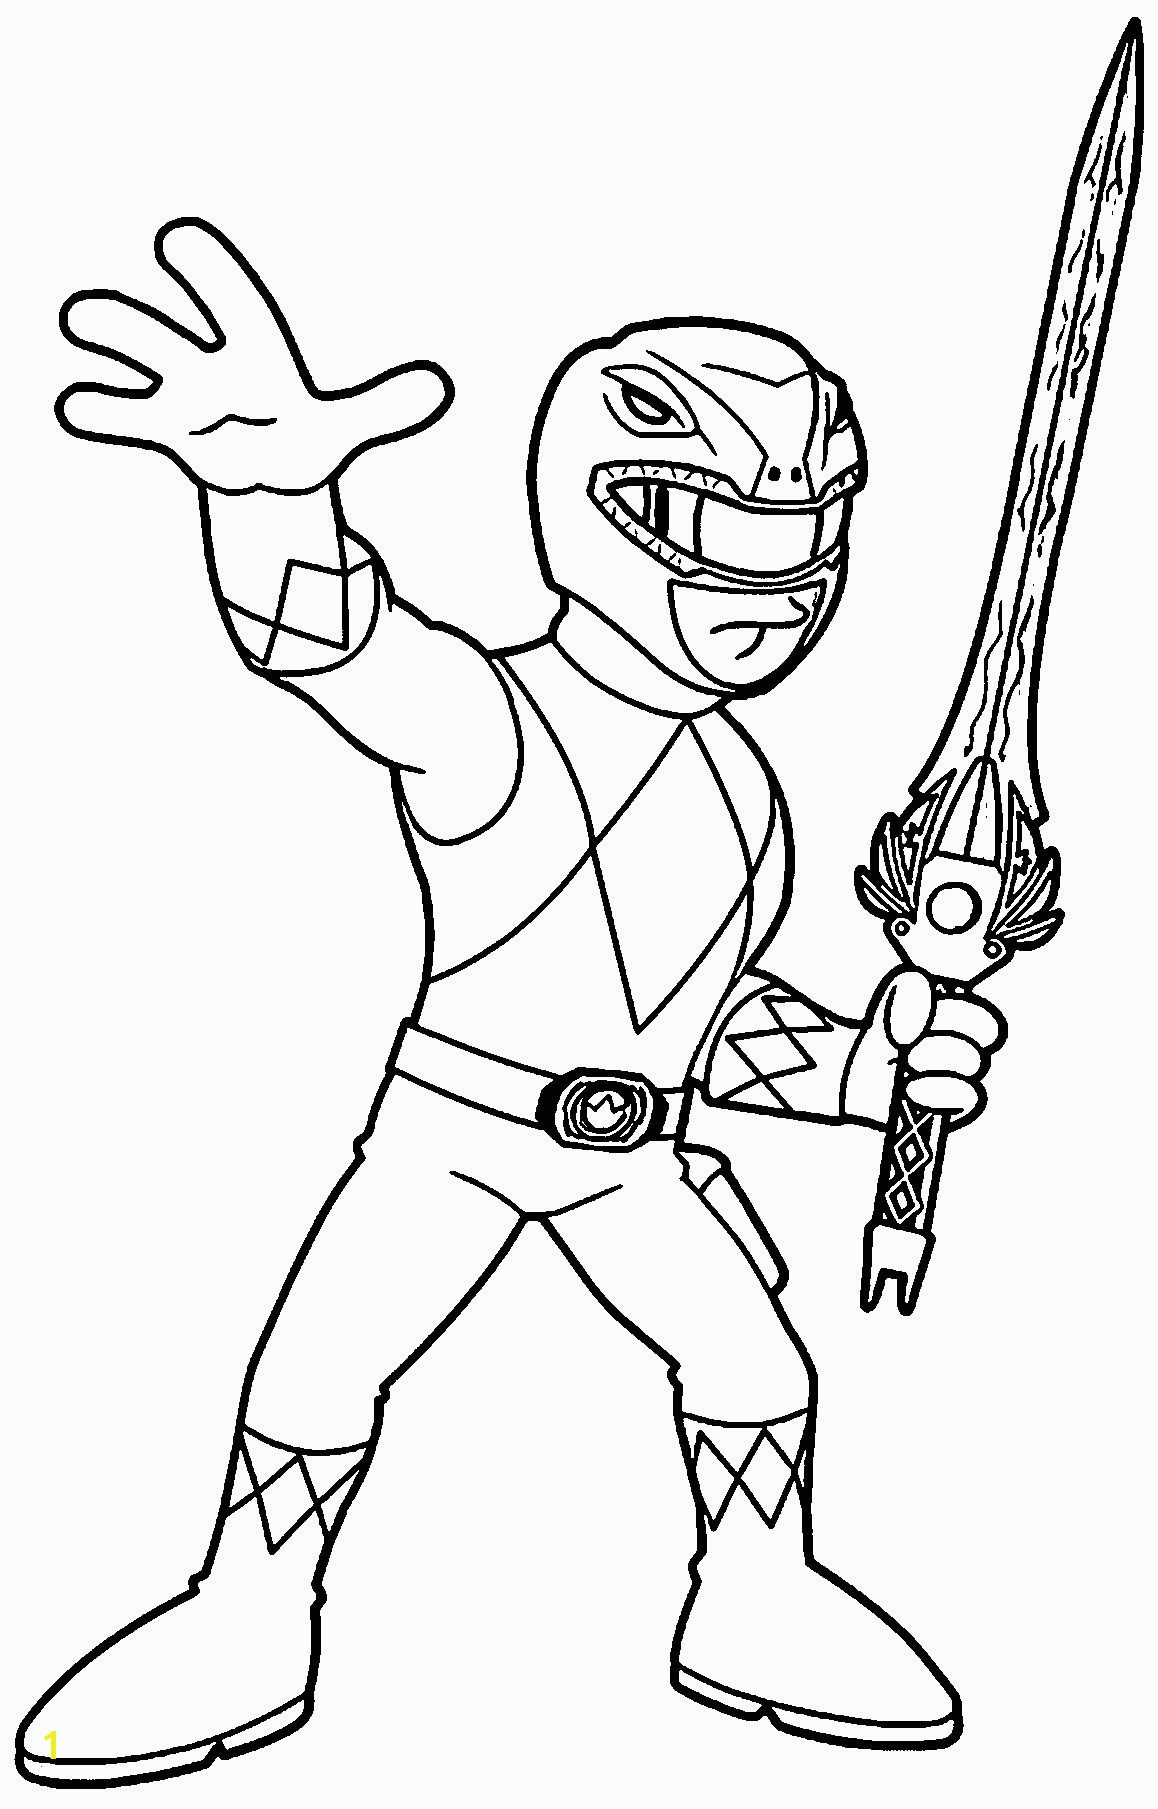 Green Power Ranger Coloring Page Power Ranger Coloring Pages Nice Schön Power Rangers Ausmalbilder